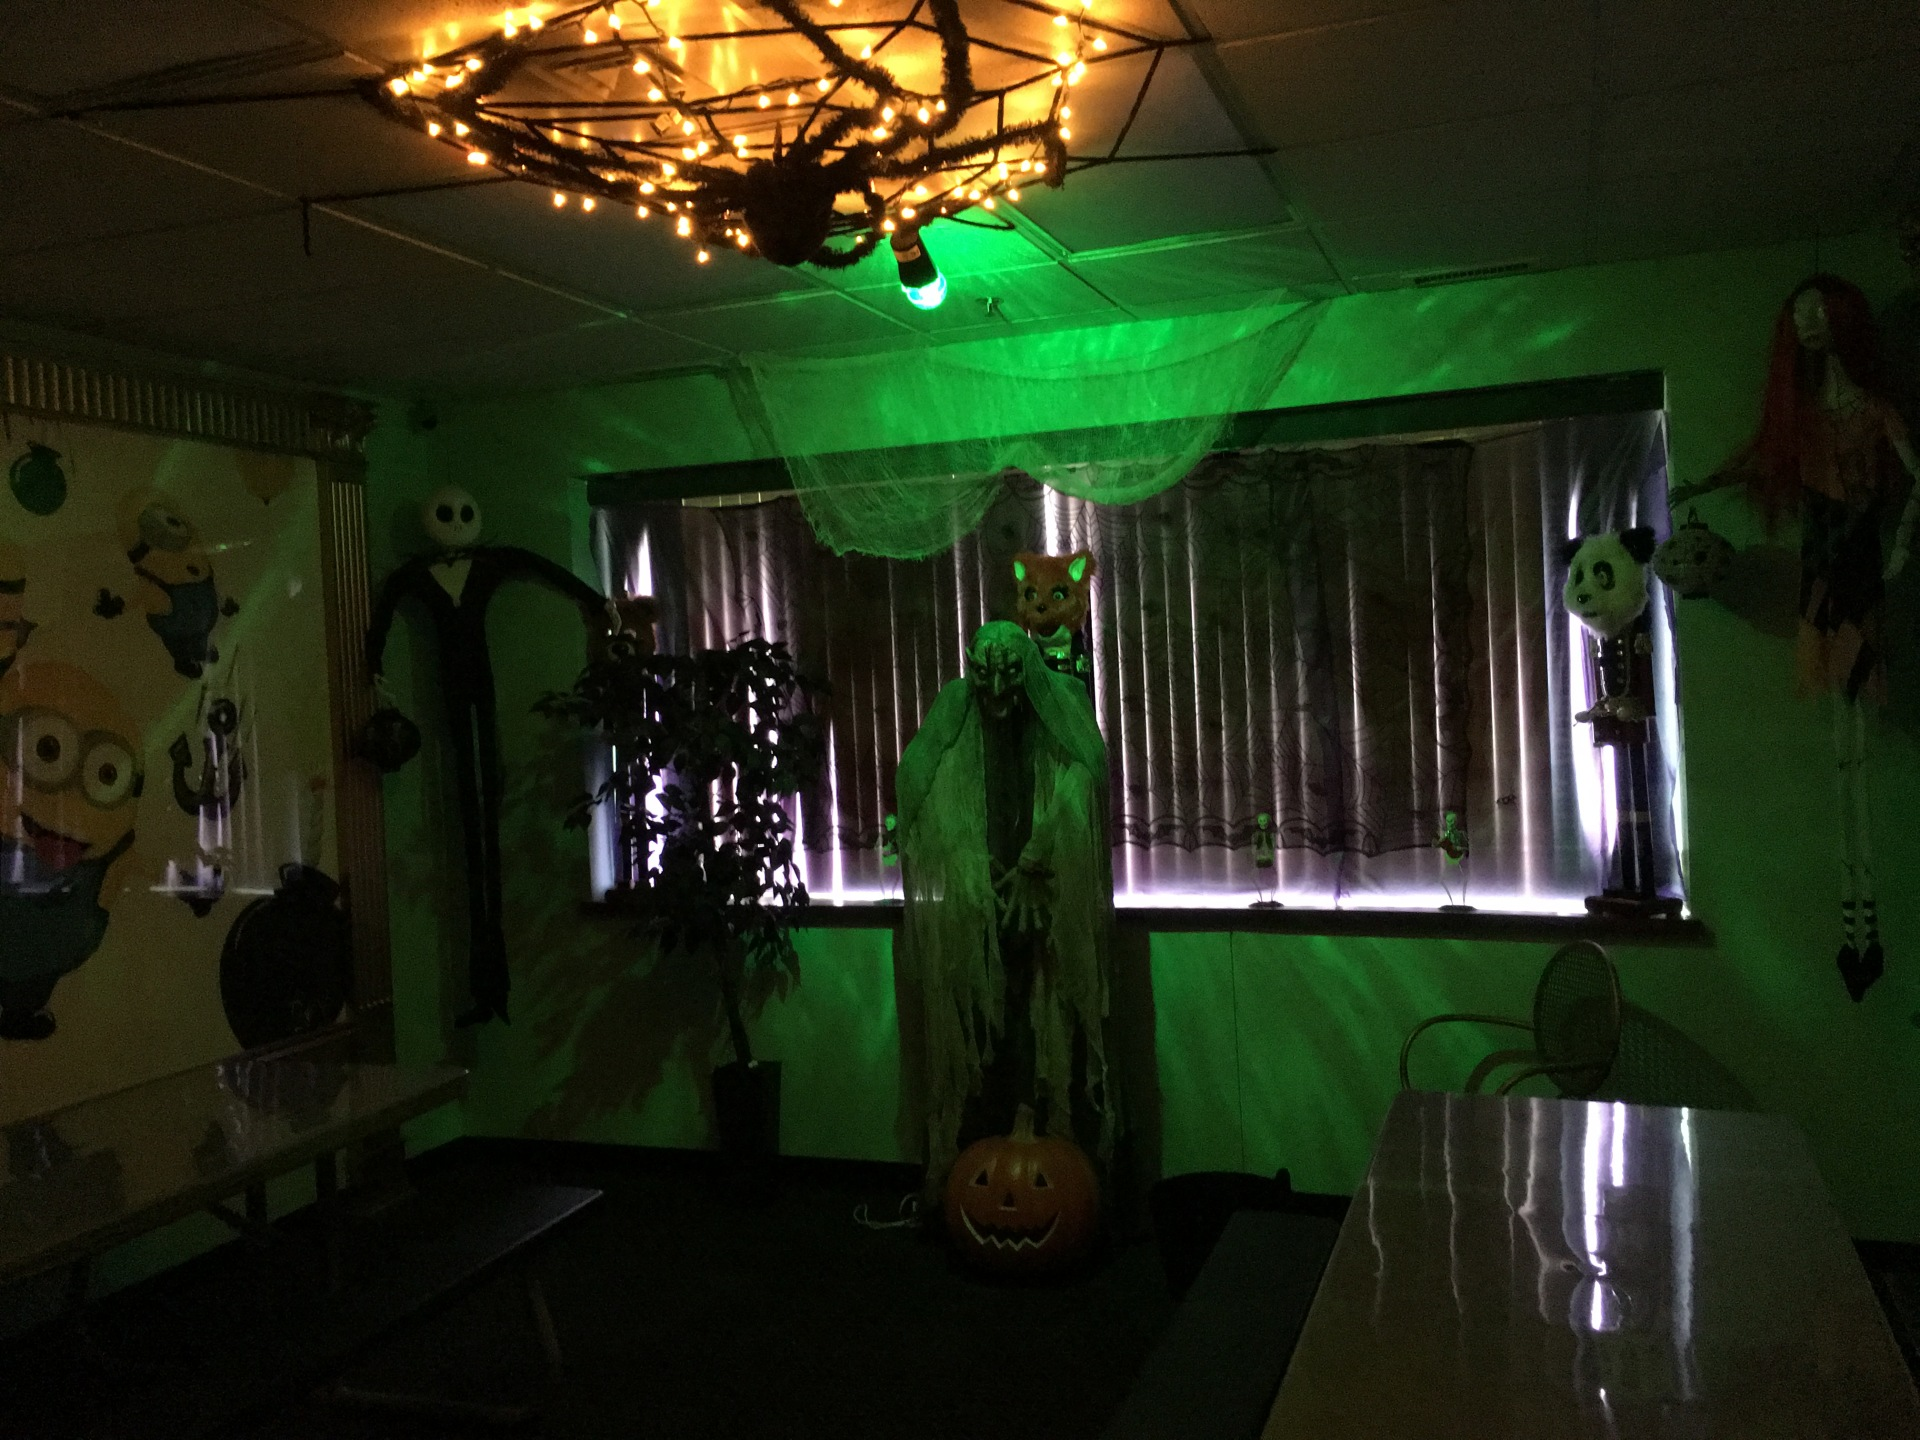 Party Room 3 Themed for Halloween Bash